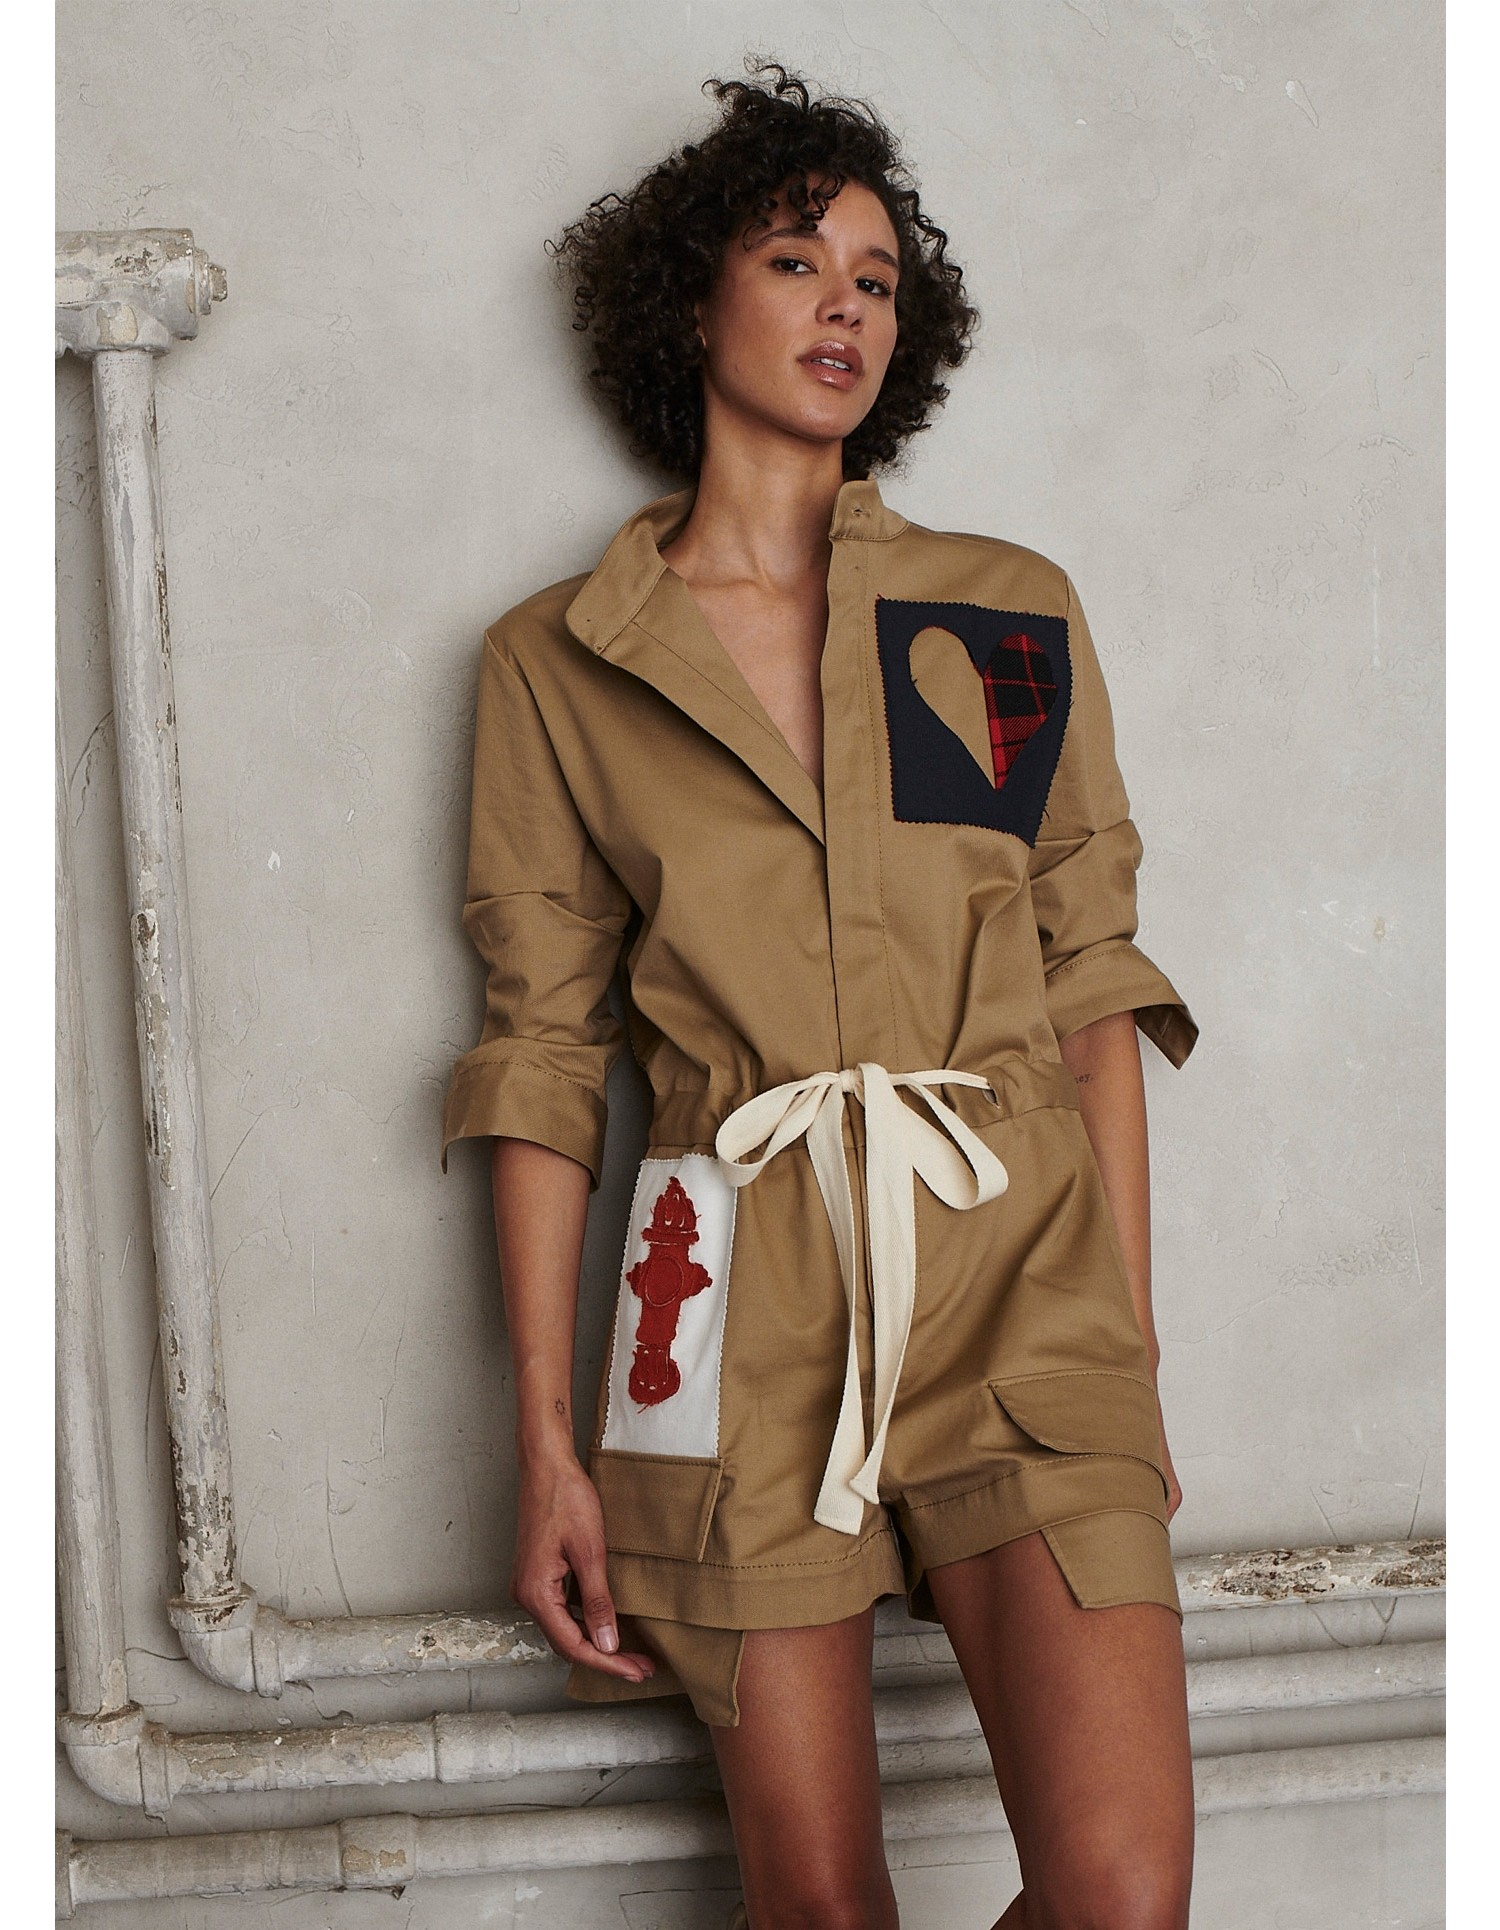 MONSE Scrapbook Patched Scrunch Sleeve Romper on Model Front View